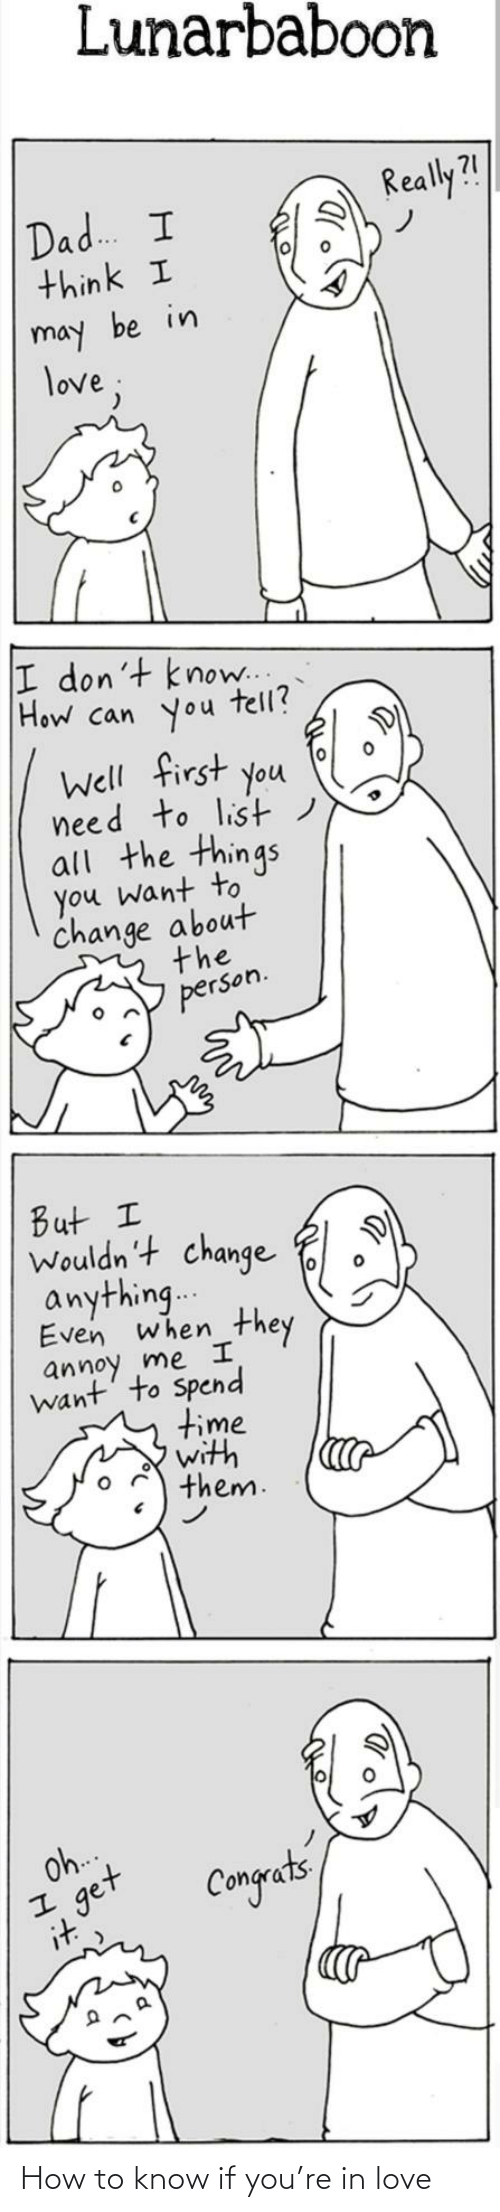 Lunarbaboon: Lunarbaboon  Really?!  Dad. I  think I  may be in  love;  I don't know..  How can you  tell?  Well first you  need to list)  all the things  you want to  change about  the  person.  But I  Wouldn't change  anything..  Even when  they  annoy me I  want' to Spend  time  with  them.  Oh.  get  it  Congets How to know if you're in love